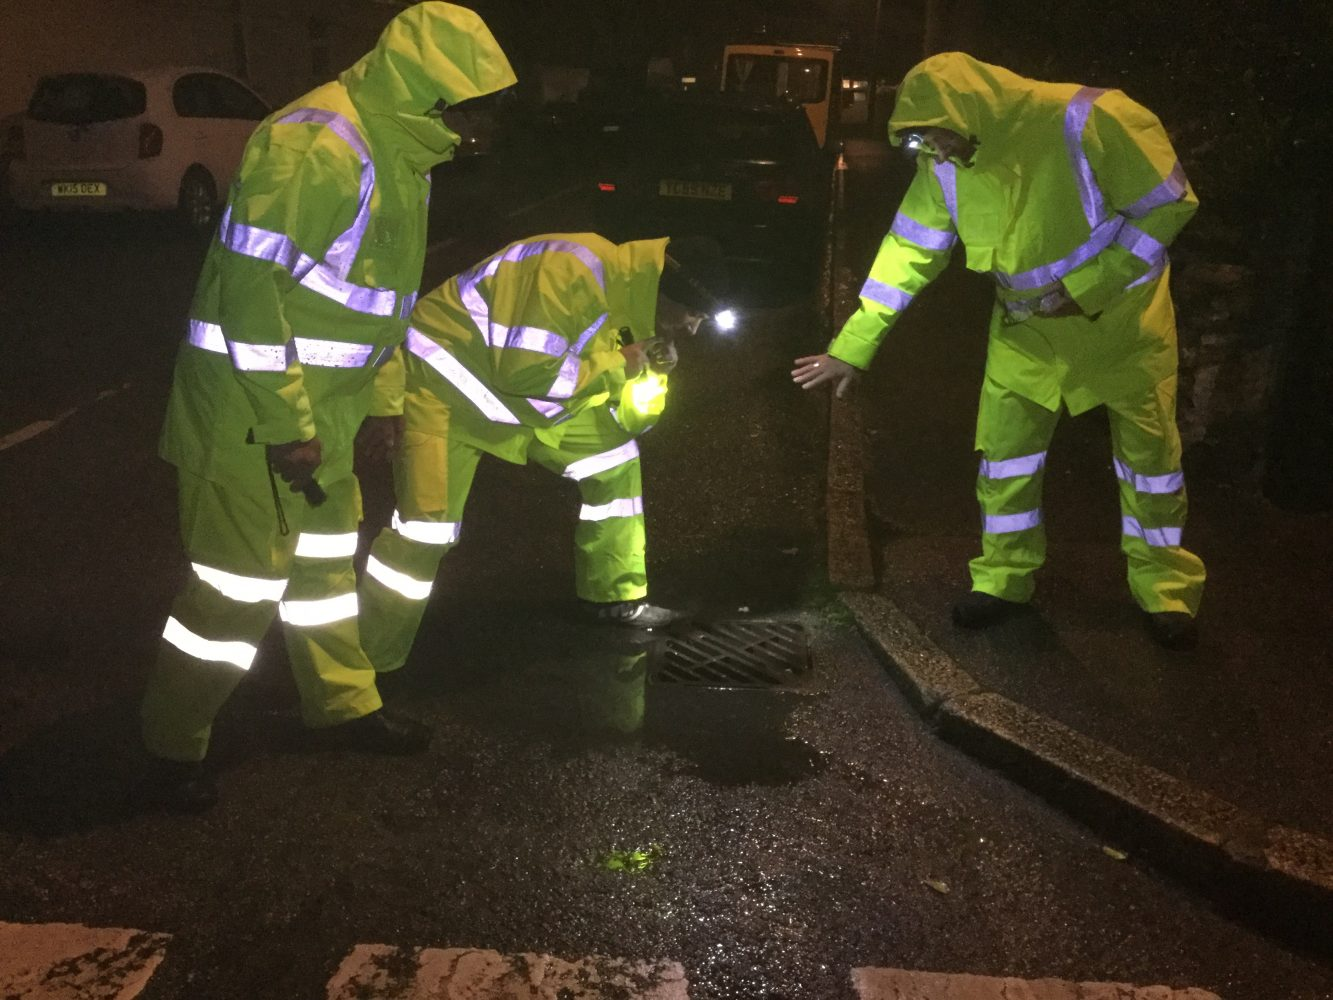 Portreath Flood Group volunteers check drain levels during the test exercise in December 2017